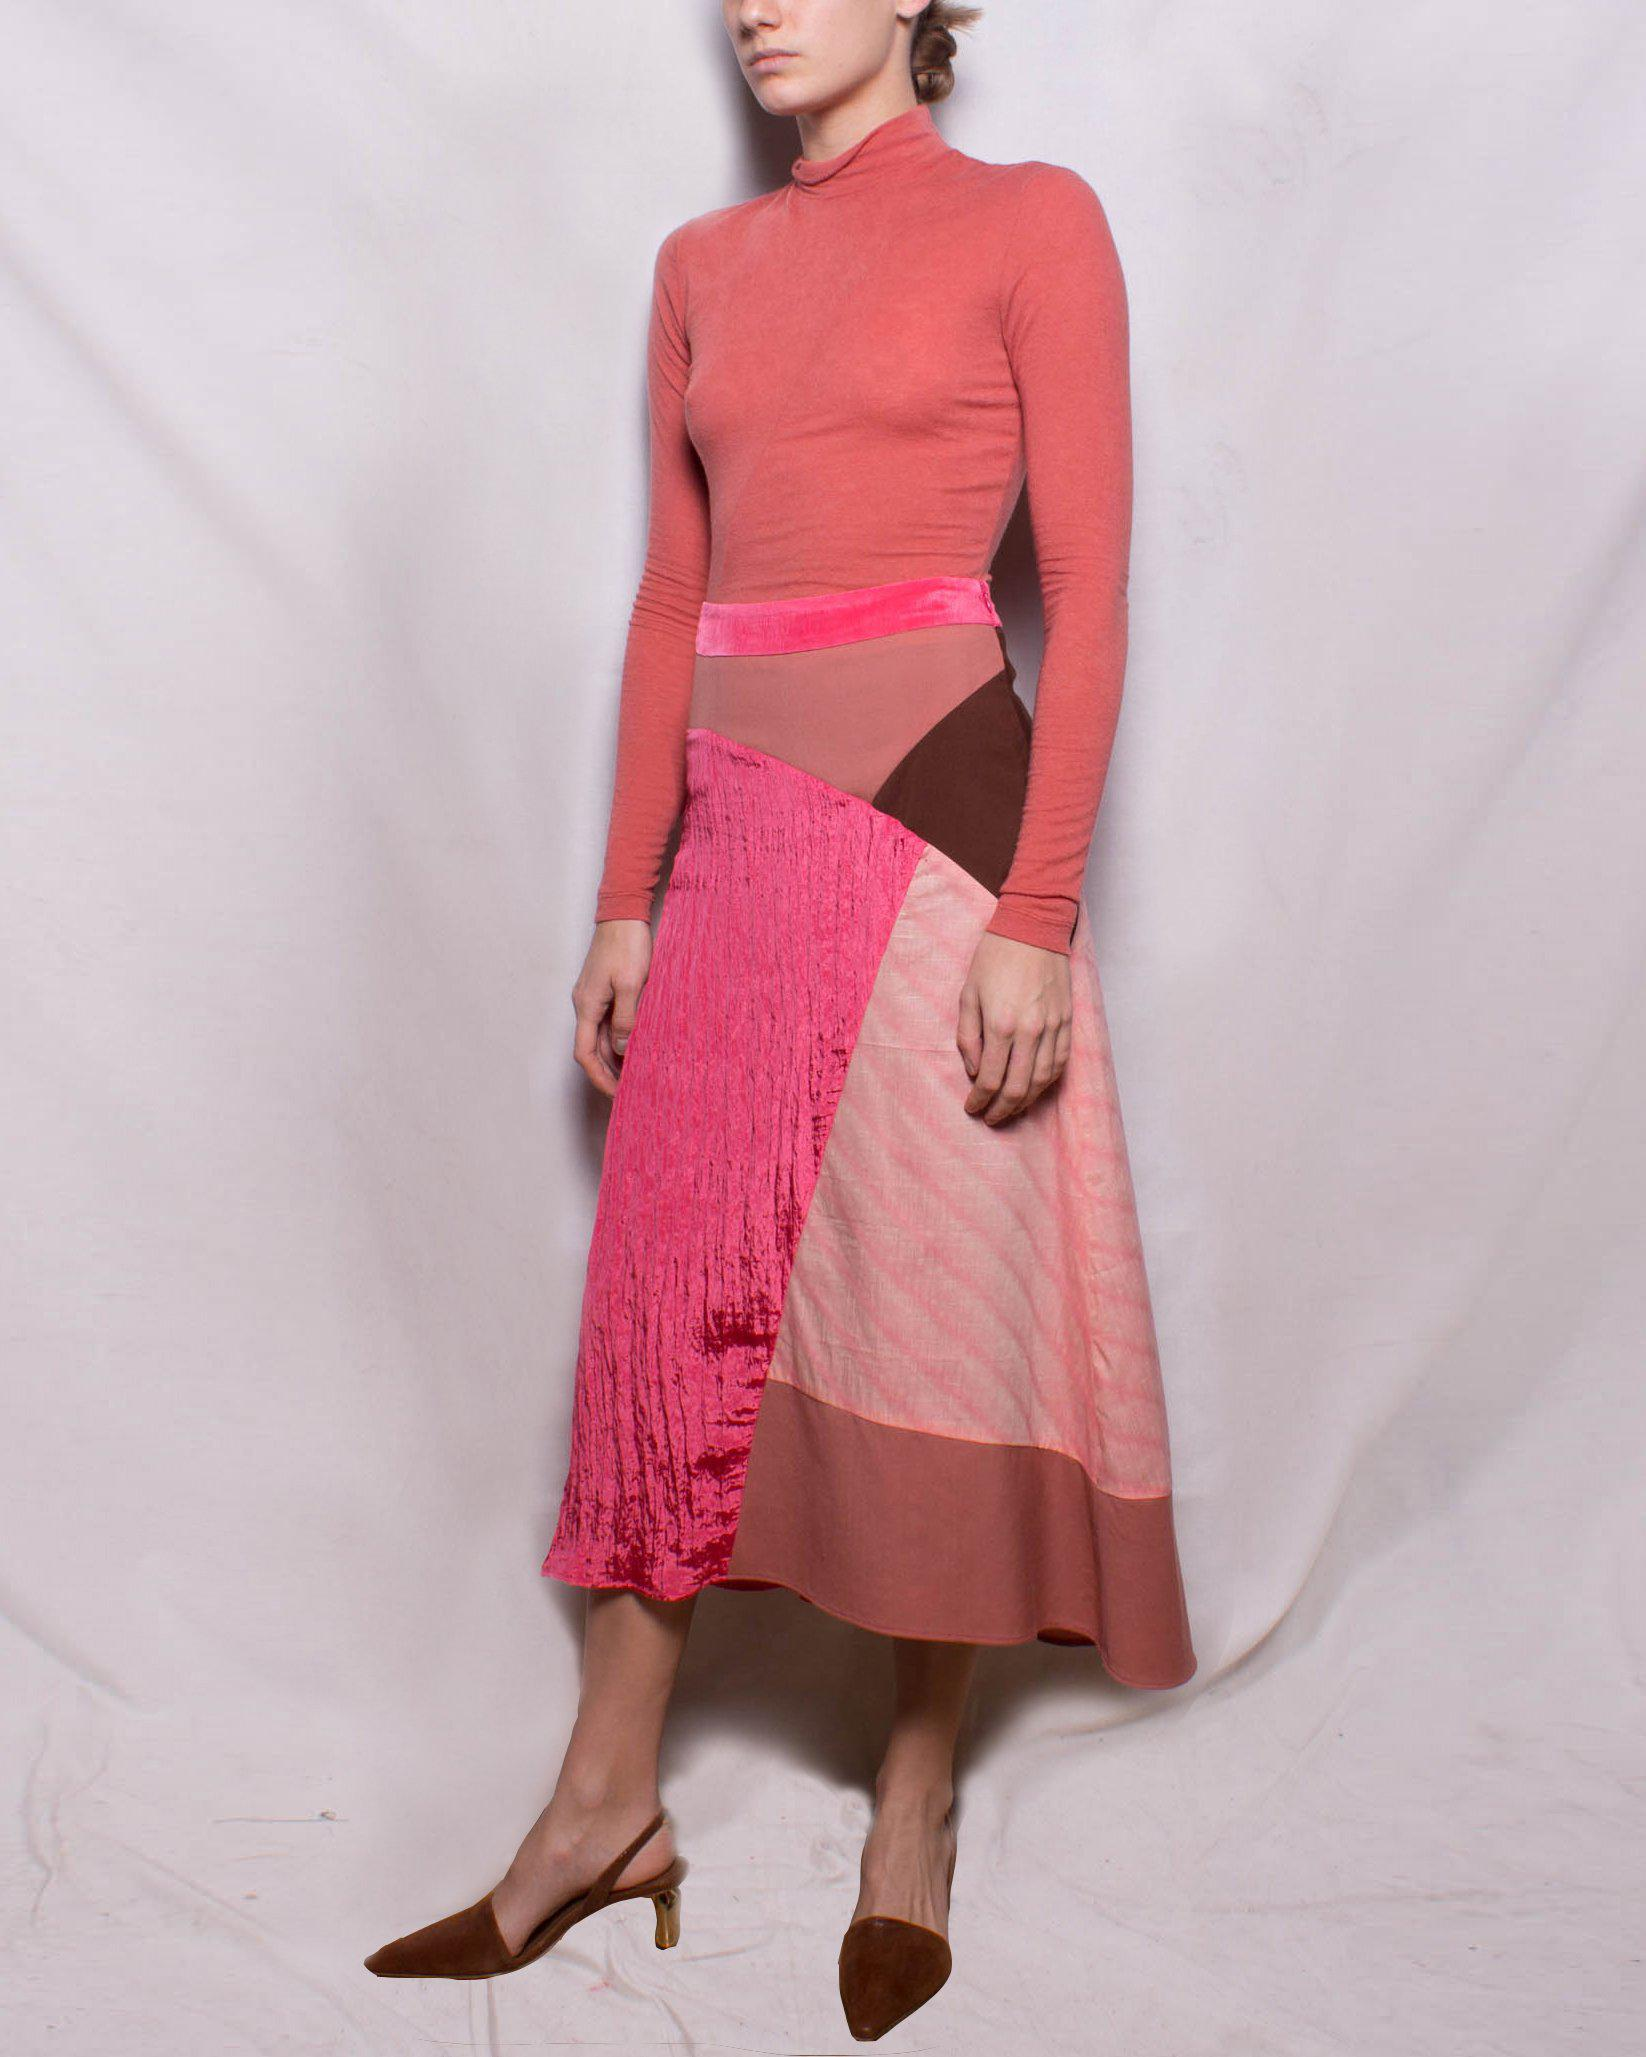 Ava Skirt Japanese Wool Suiting Satin Crinkle Coral Pink + Rust Tonal Mix + Cotton Pink - SPECIAL PRICE